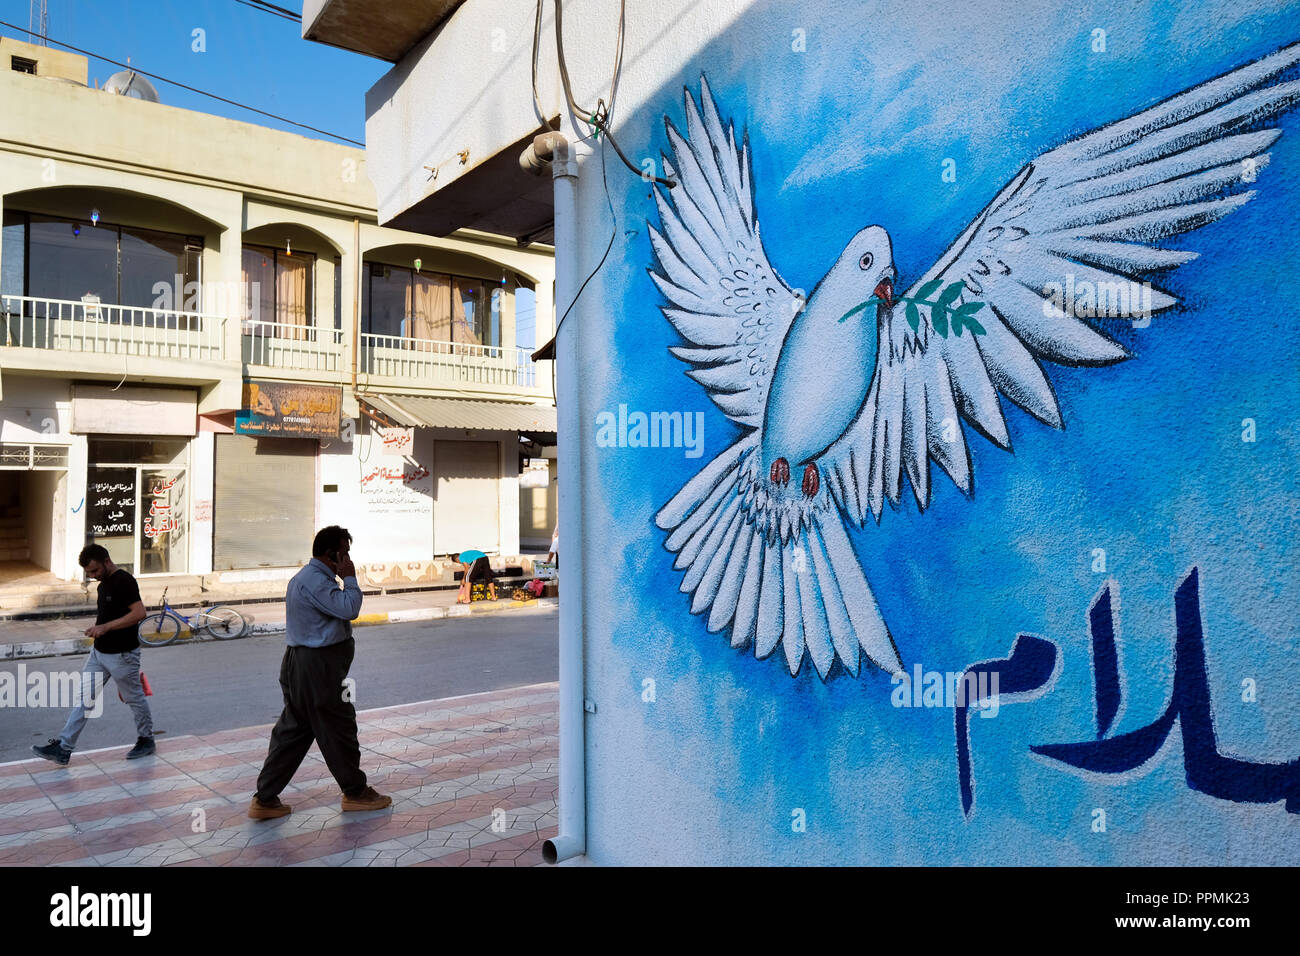 Peace dove on a wall, painting in Telesquf village, Nineveh Plain, Northern Iraq, Kurdish Autonomous Region - Friedenstaube an einer Wand im Ort Telesquf,  Nord-Irak, Kurdistan - Stock Image